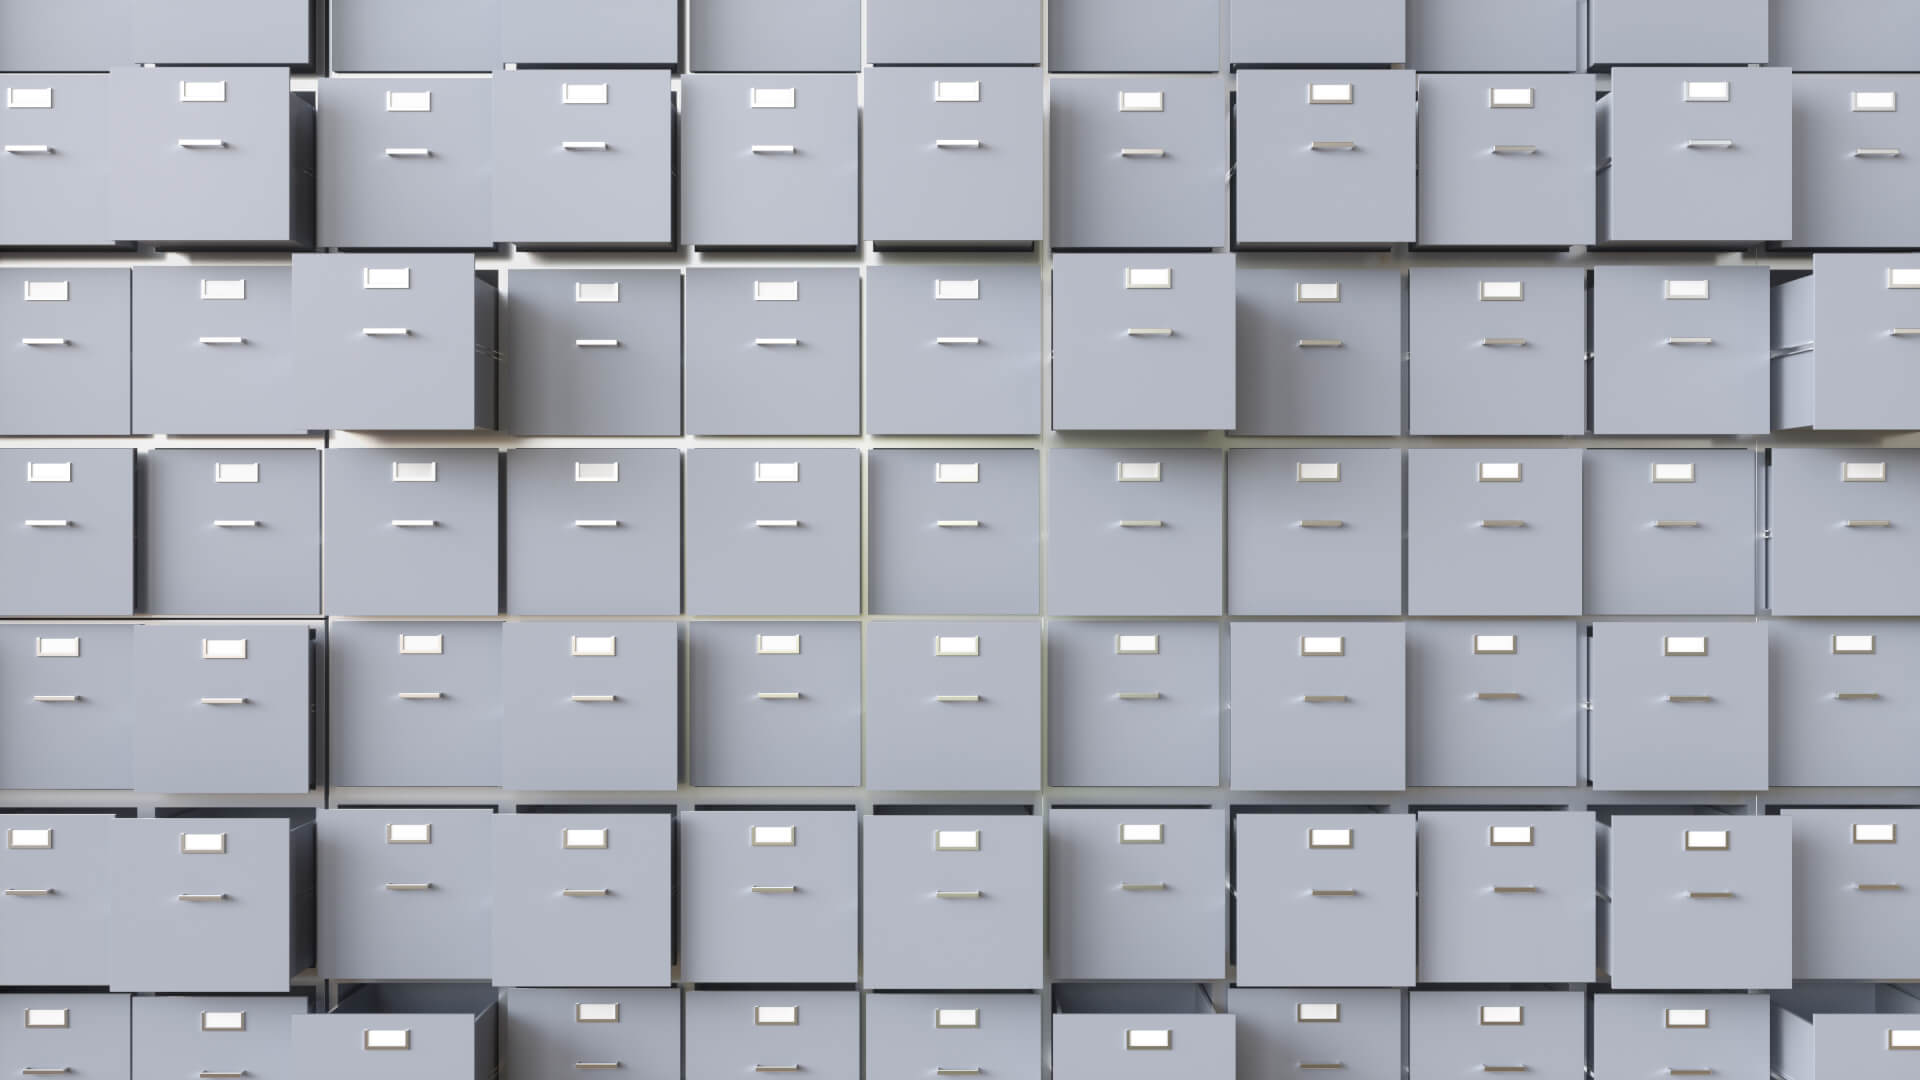 What to Keep in an Employee's File and What Not to